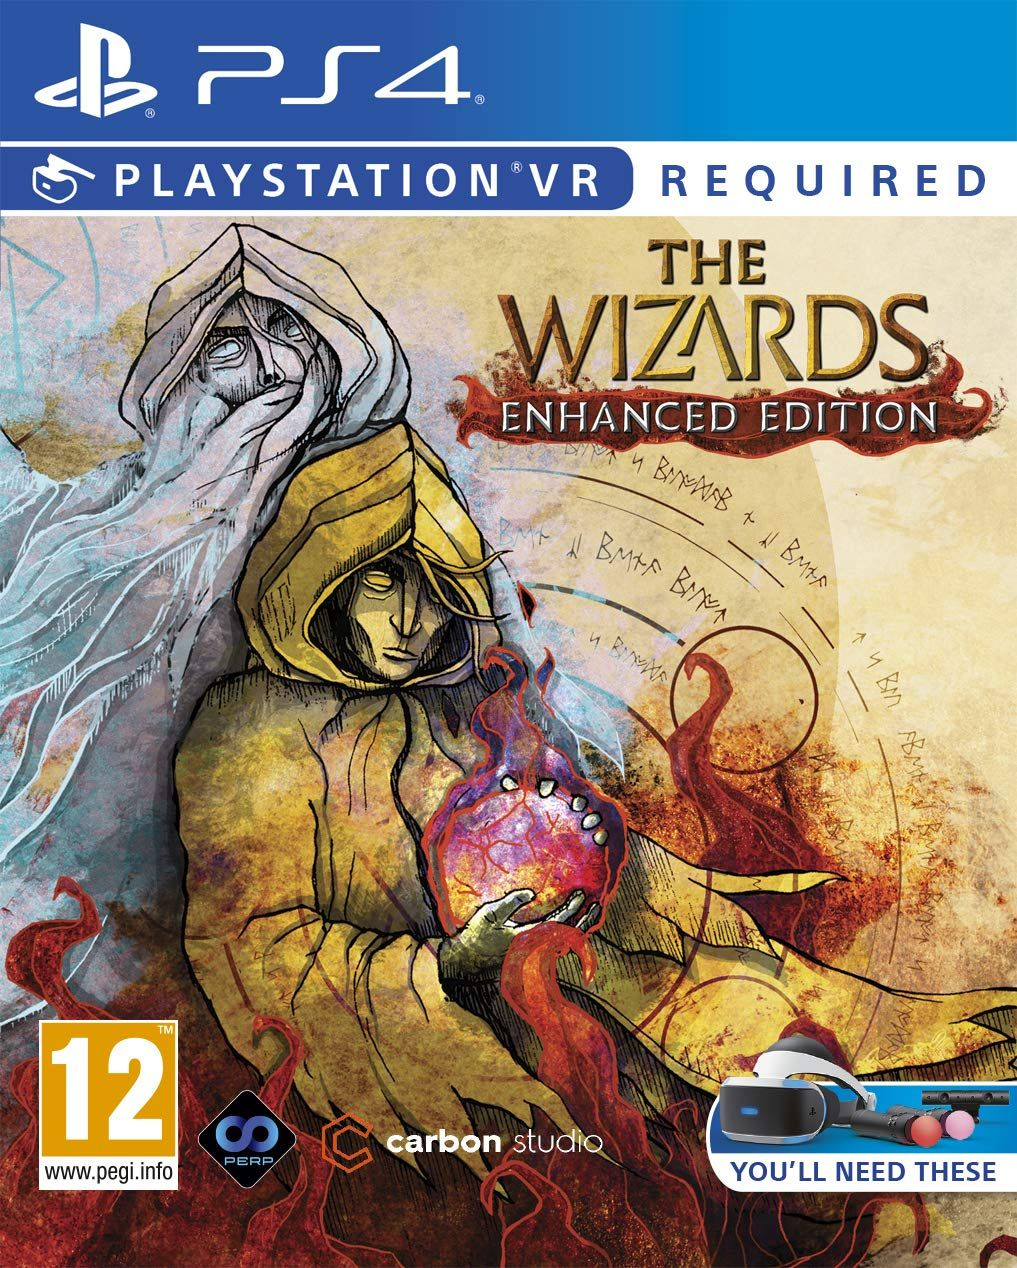 The Wizards (PS4 VR) - 1